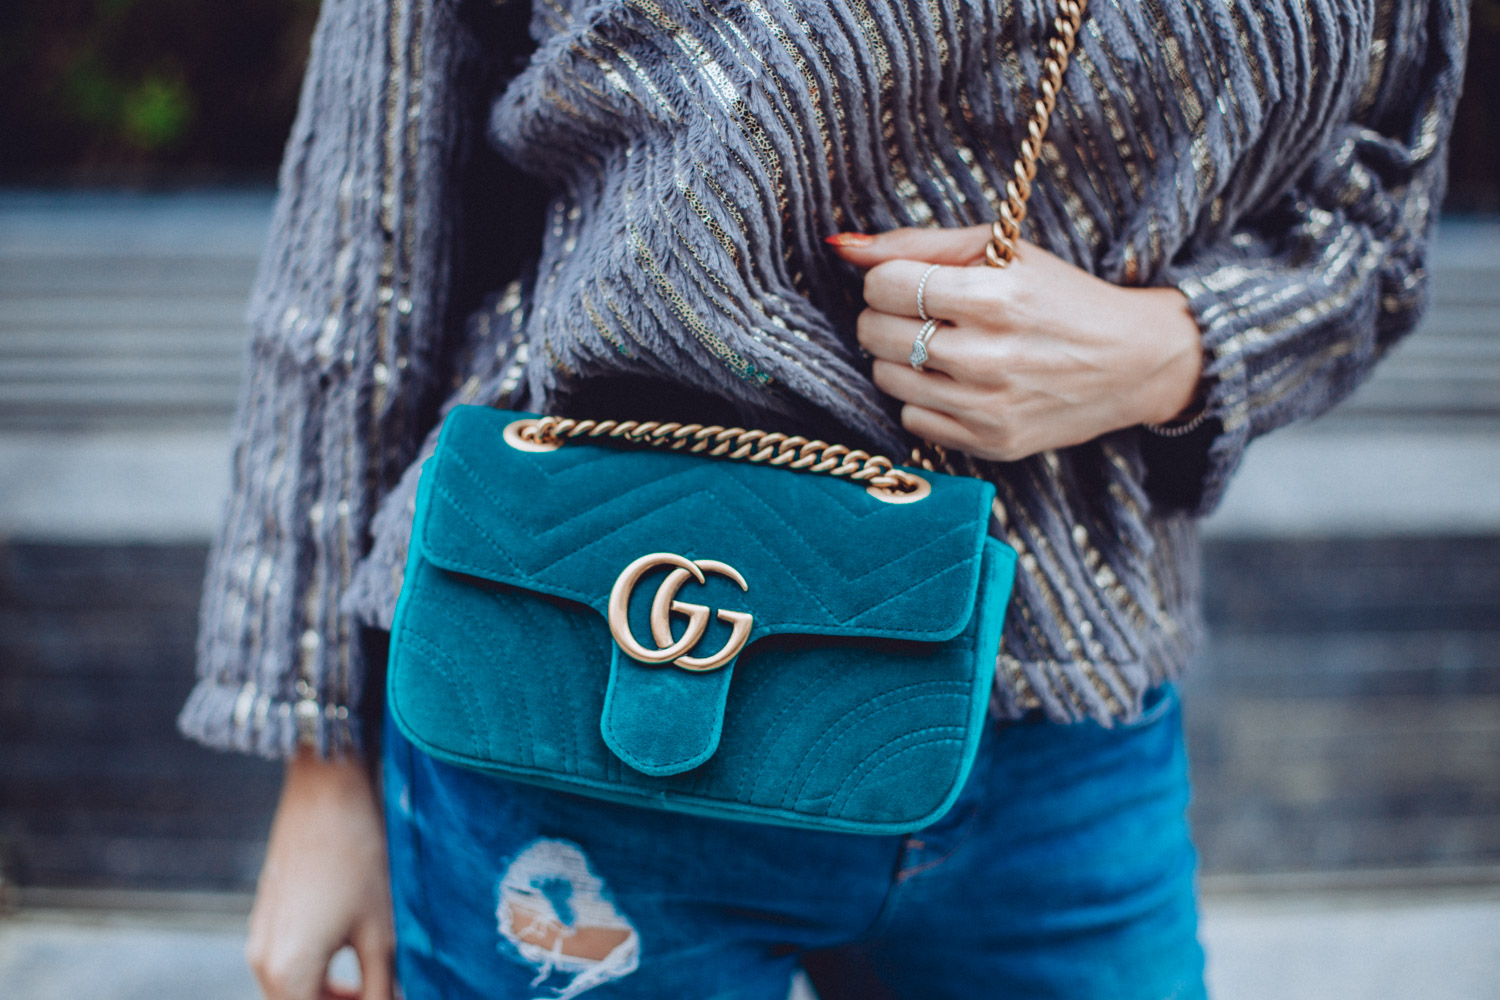 Gucci GG Marmont Velvet bag in petrol blue chevron